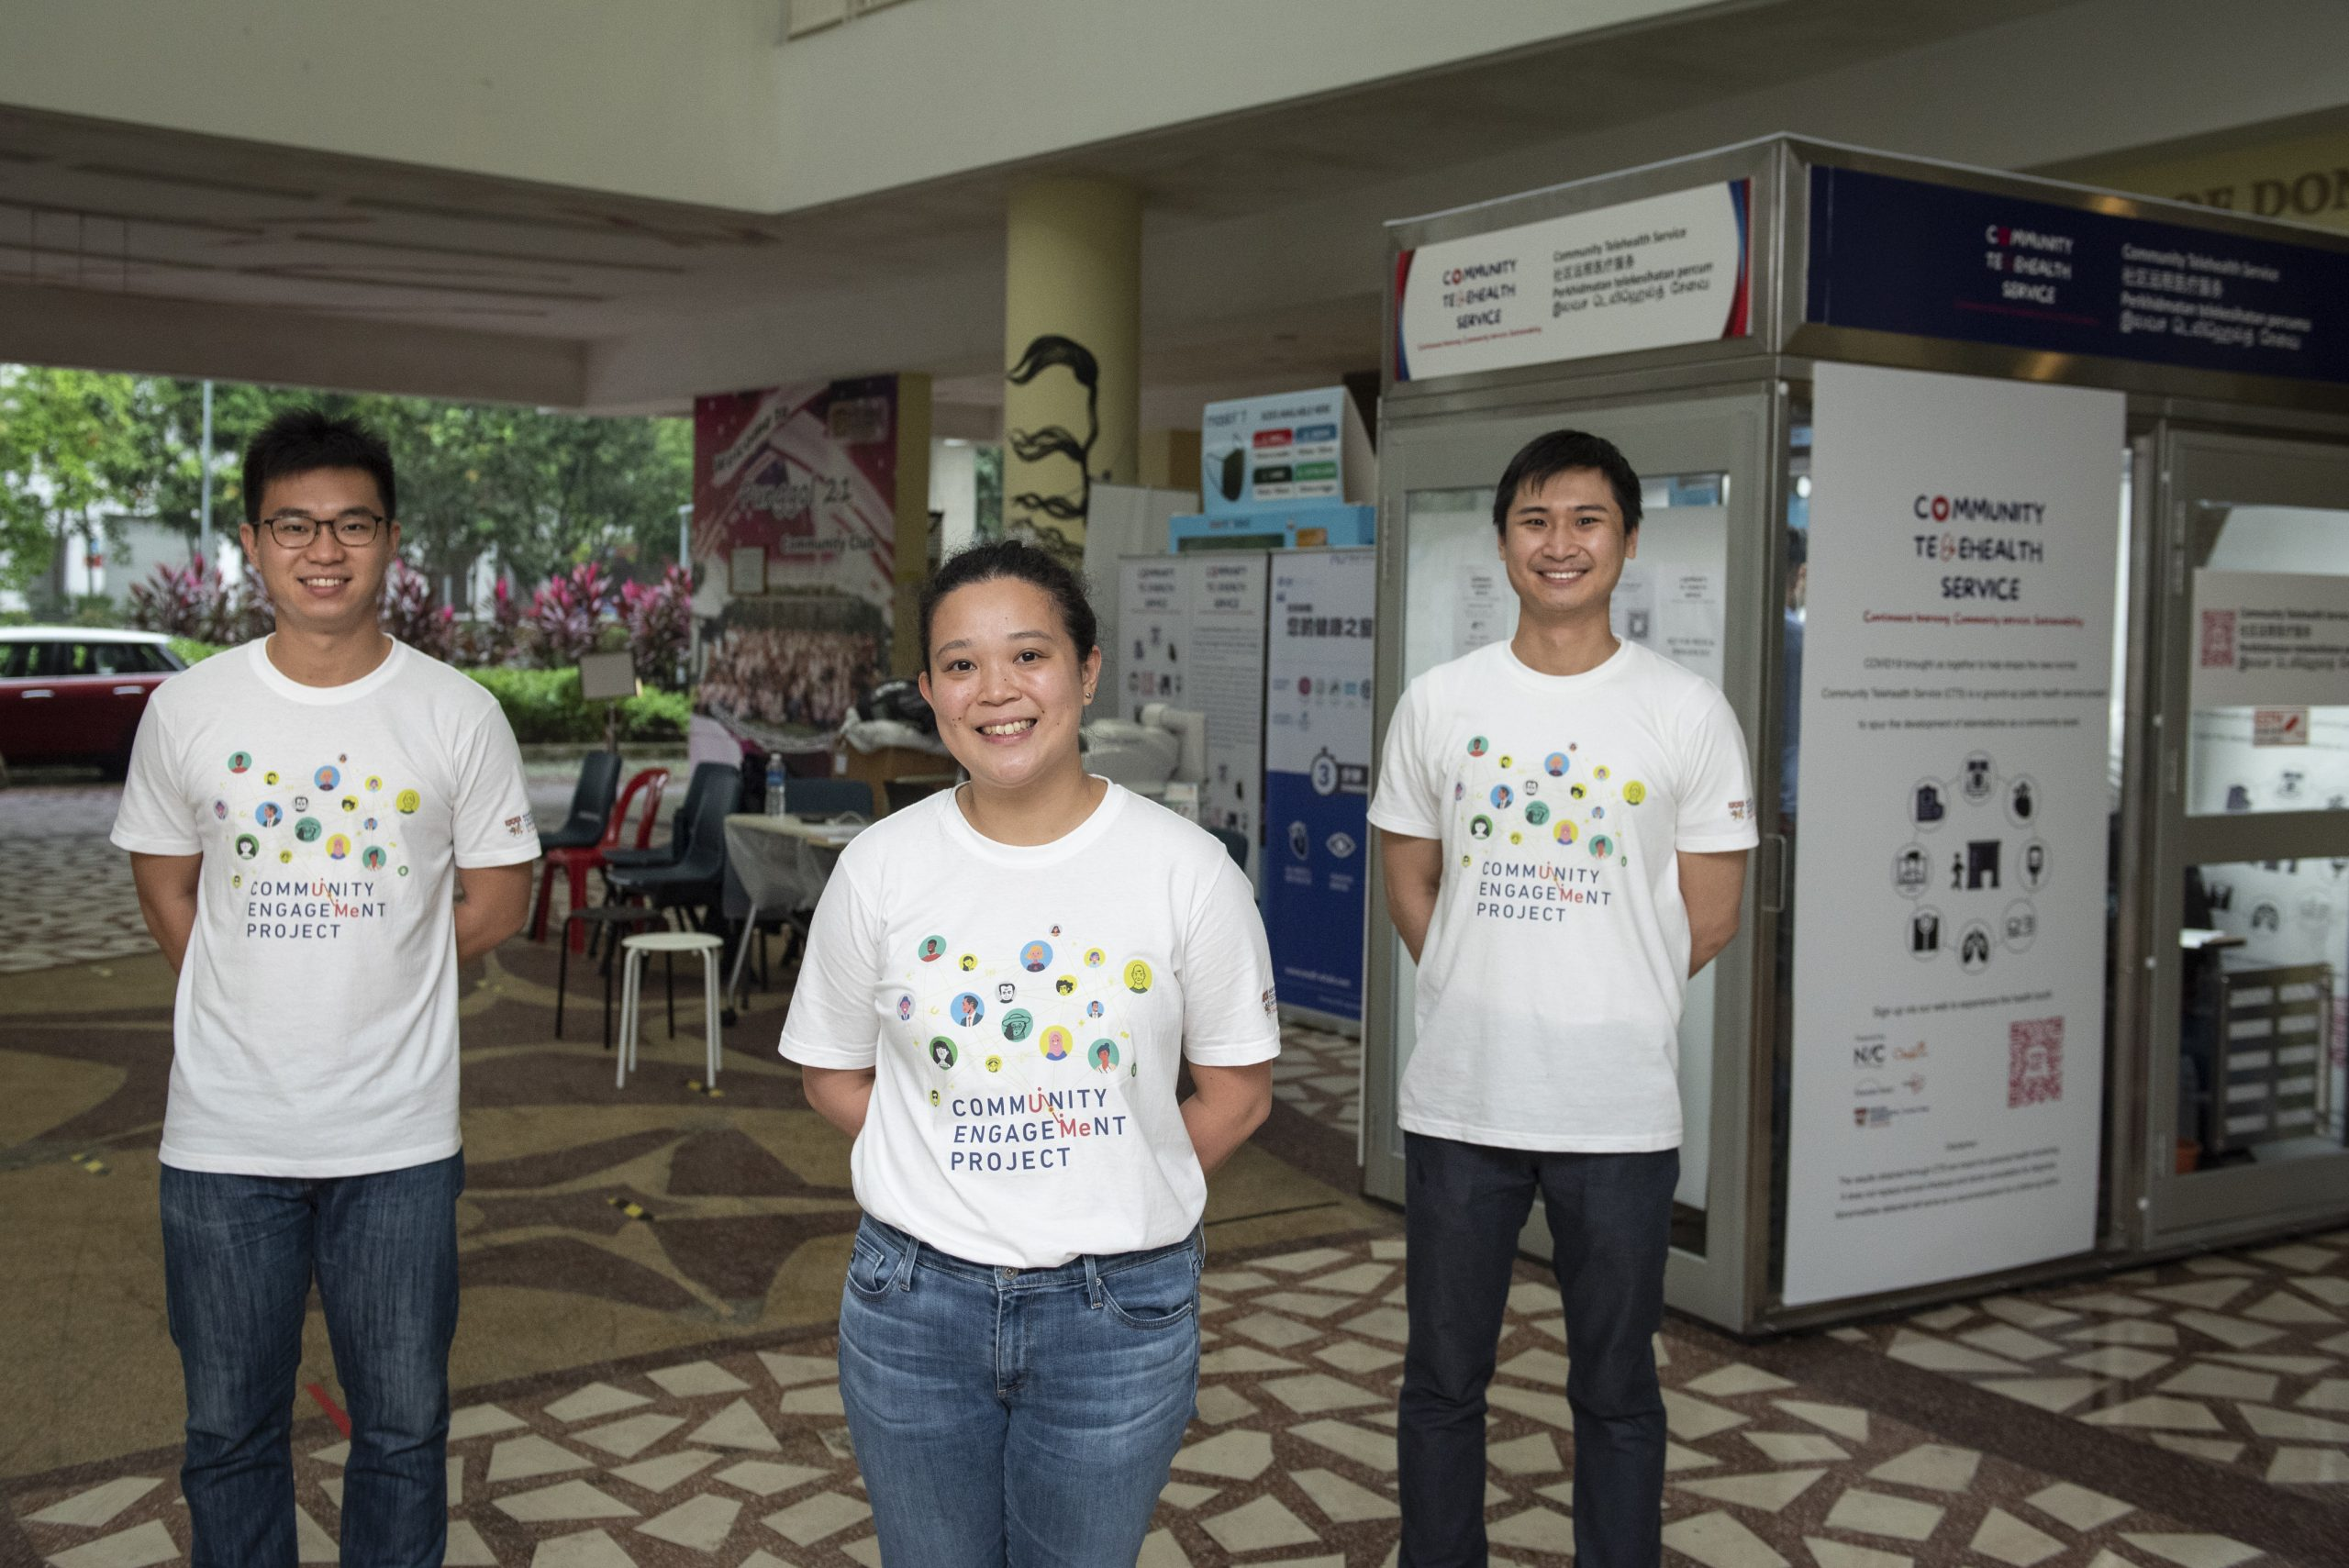 (L-R) Mr Wee Soon Keong, 28, Ms Michelle Law, 31, and Mr Alvin Chew, 28, from NTU Lee Kong Chian School of Medicine, are the founders of Community Telehealth Service.